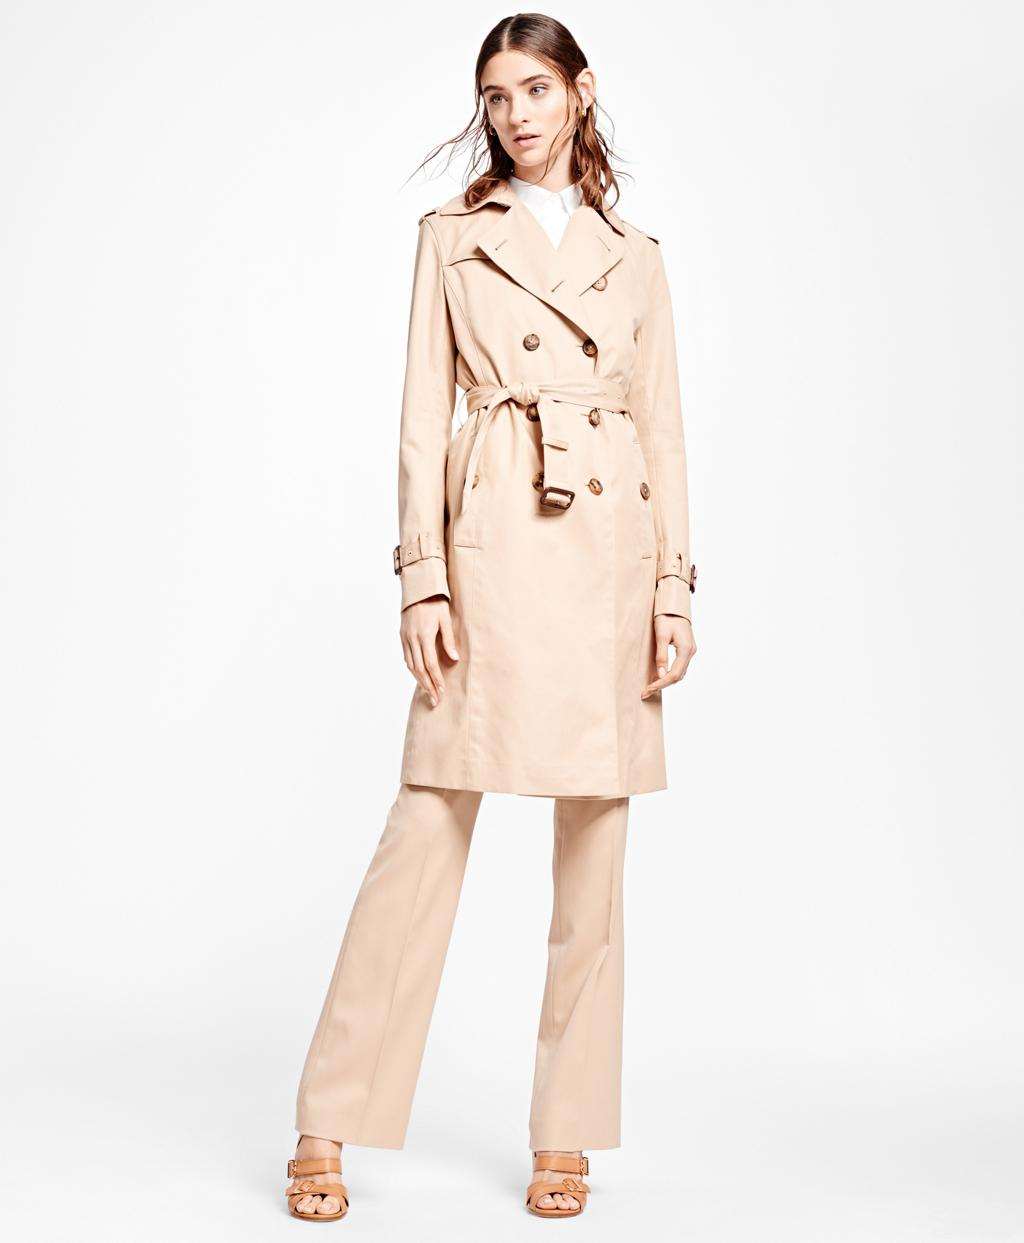 e853cba149635 Lyst - Brooks Brothers Double-breasted Trench Coat in Natural